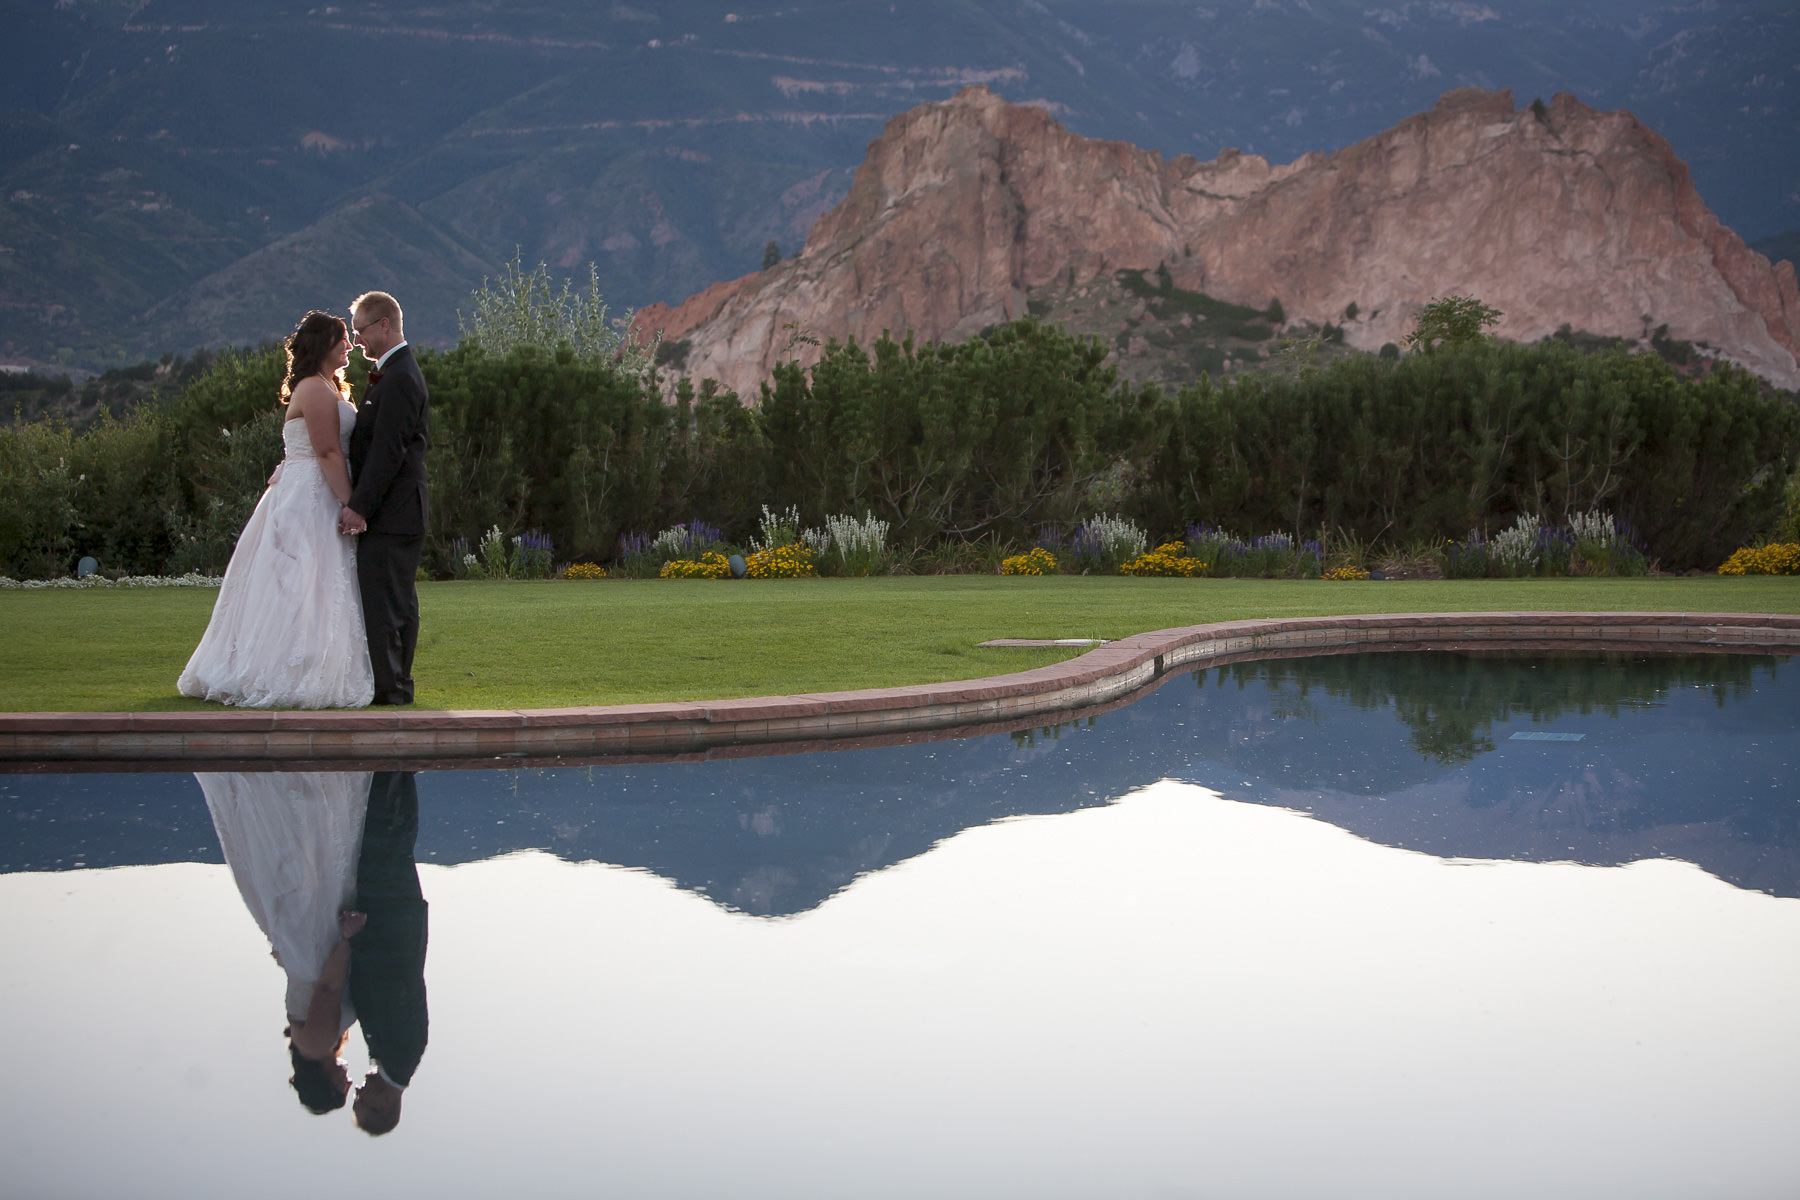 Bride and groom embracing in front of the reflection pool at sunset at the Garden of the Gods Club.